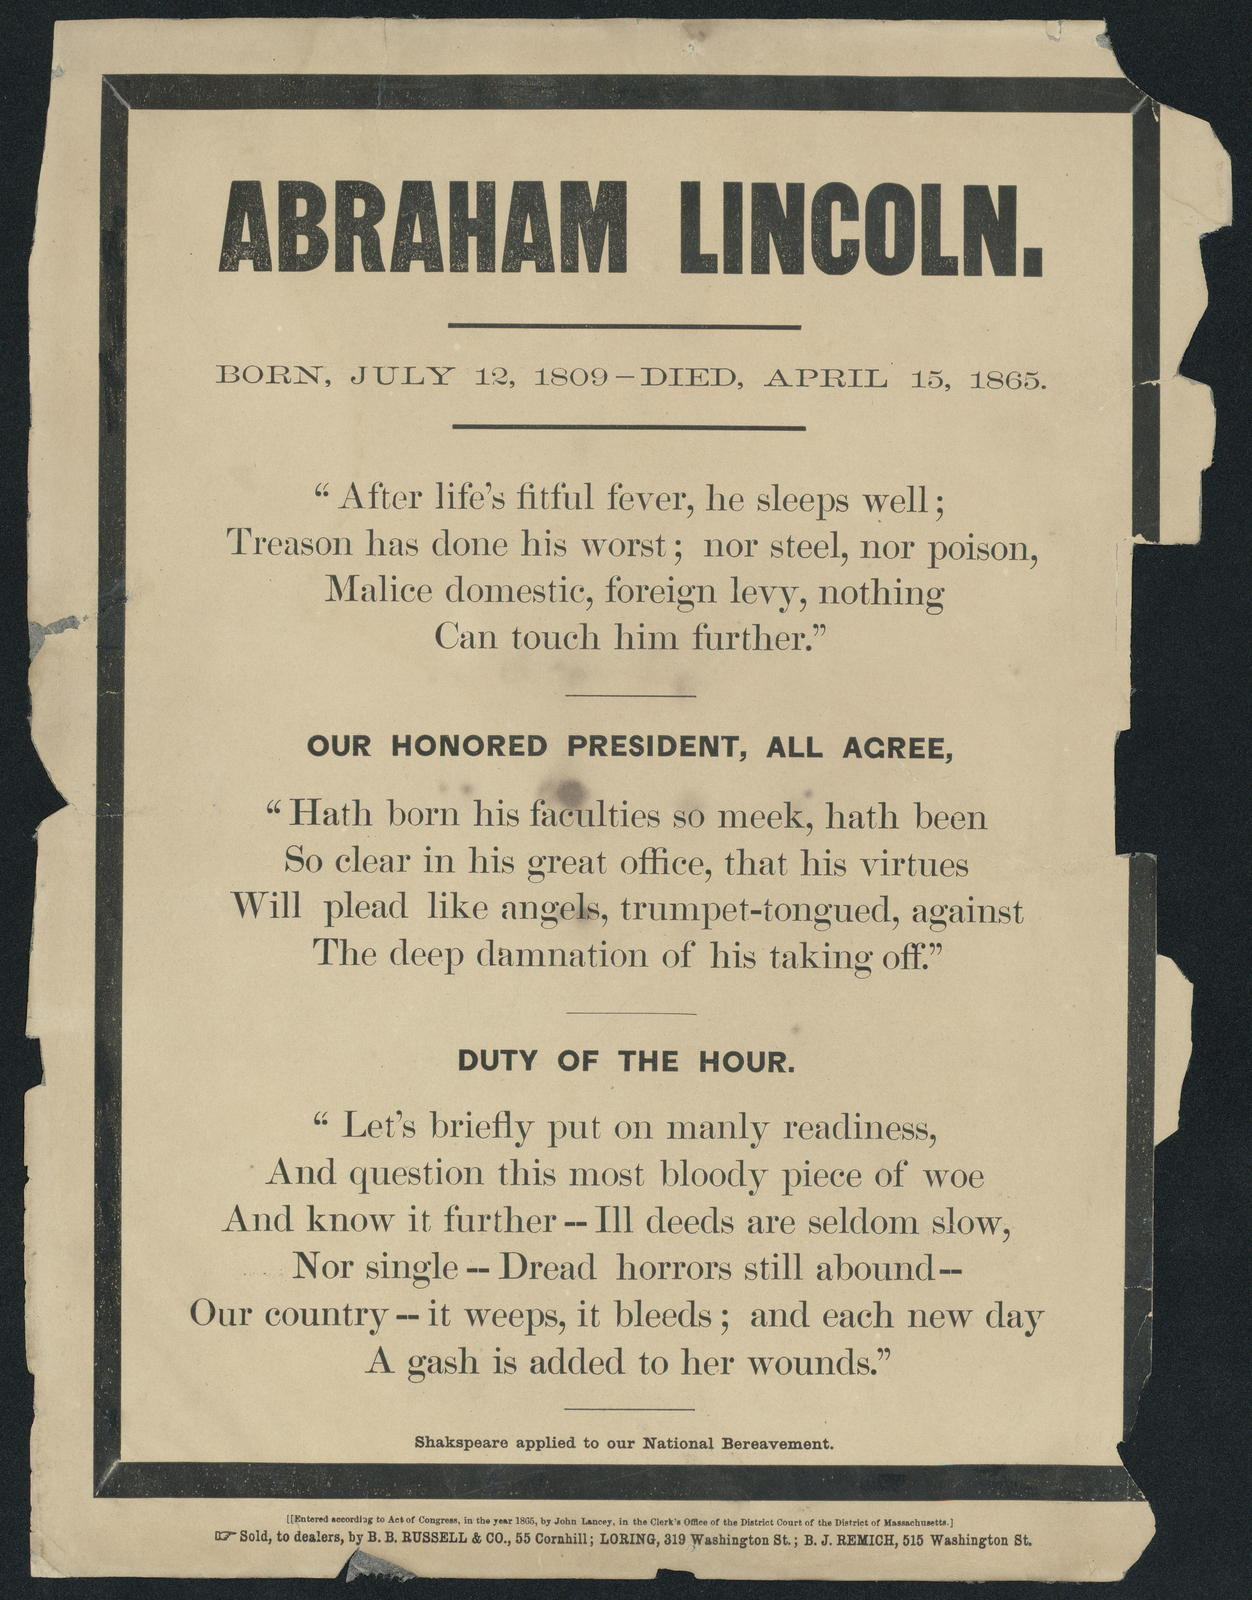 Abraham Lincoln. Born, July 12, 1809-died, April 15, 1865. Shakespeare applied to our national bereavement.